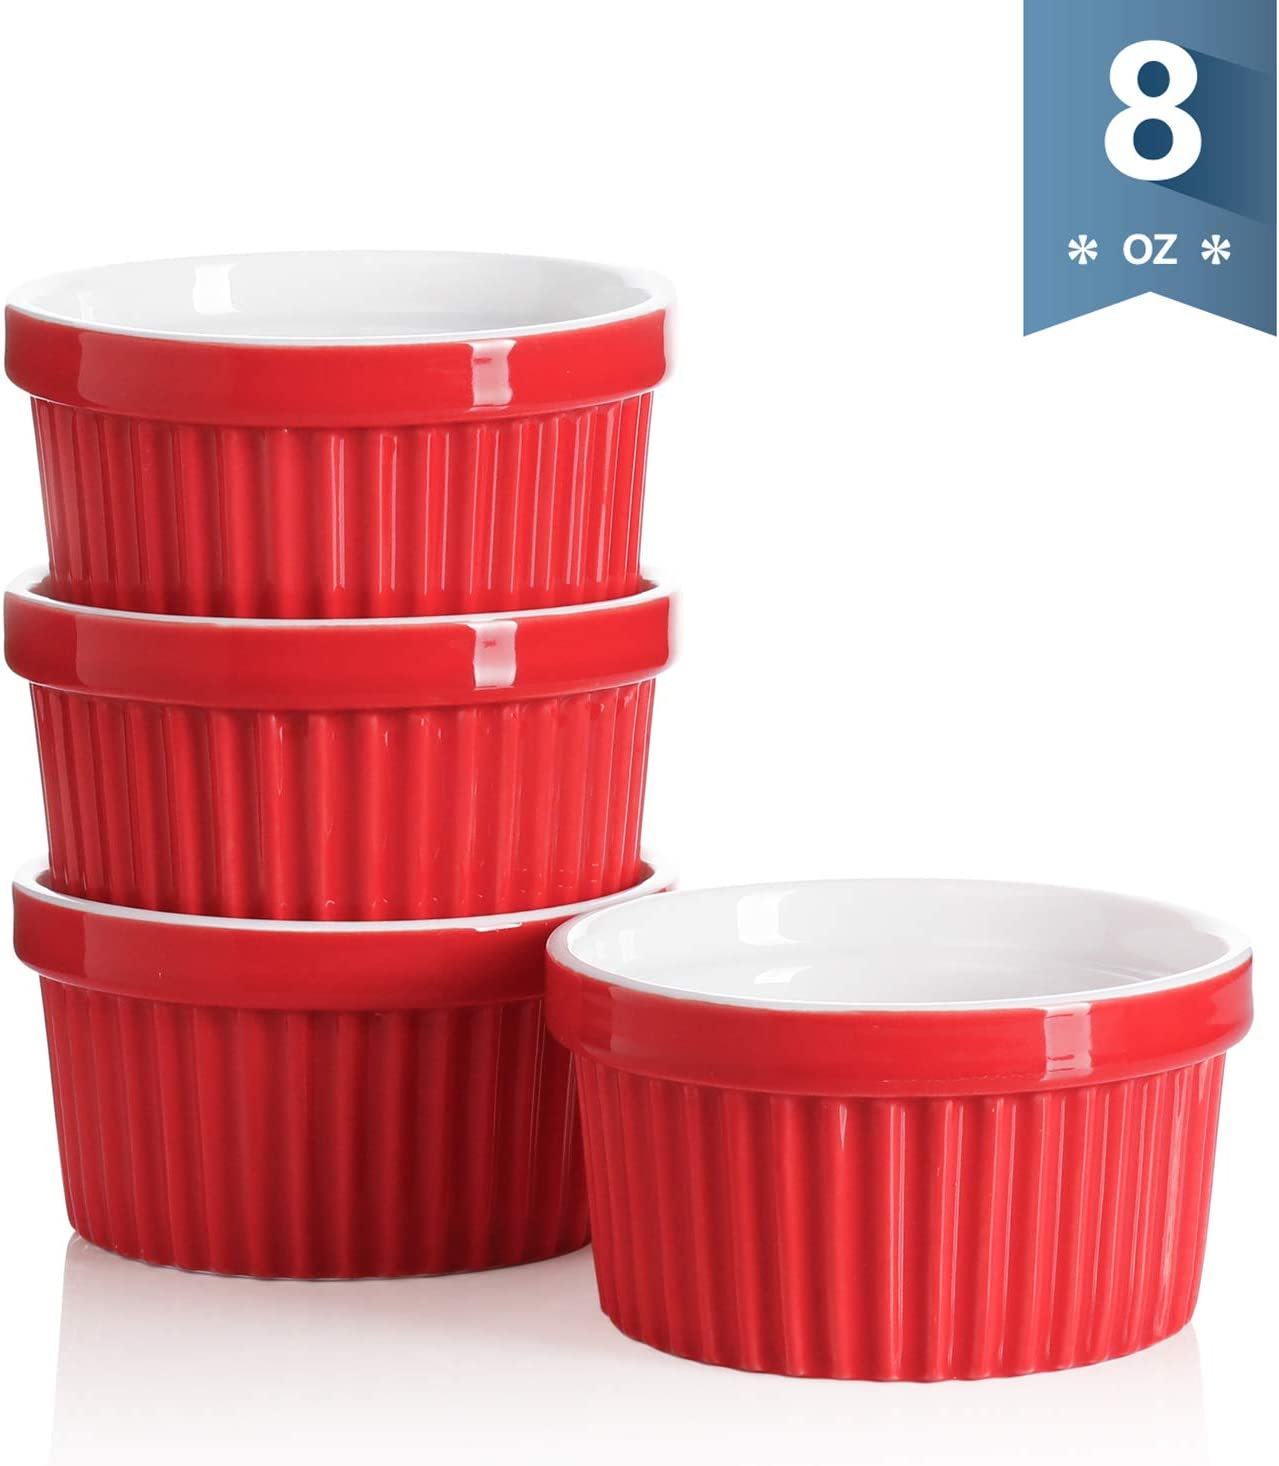 Sweese 501.104 Porcelain Souffle Dishes, Ramekins for Baking - 8 Ounce for Souffle, Creme Brulee - Set of 4, Red